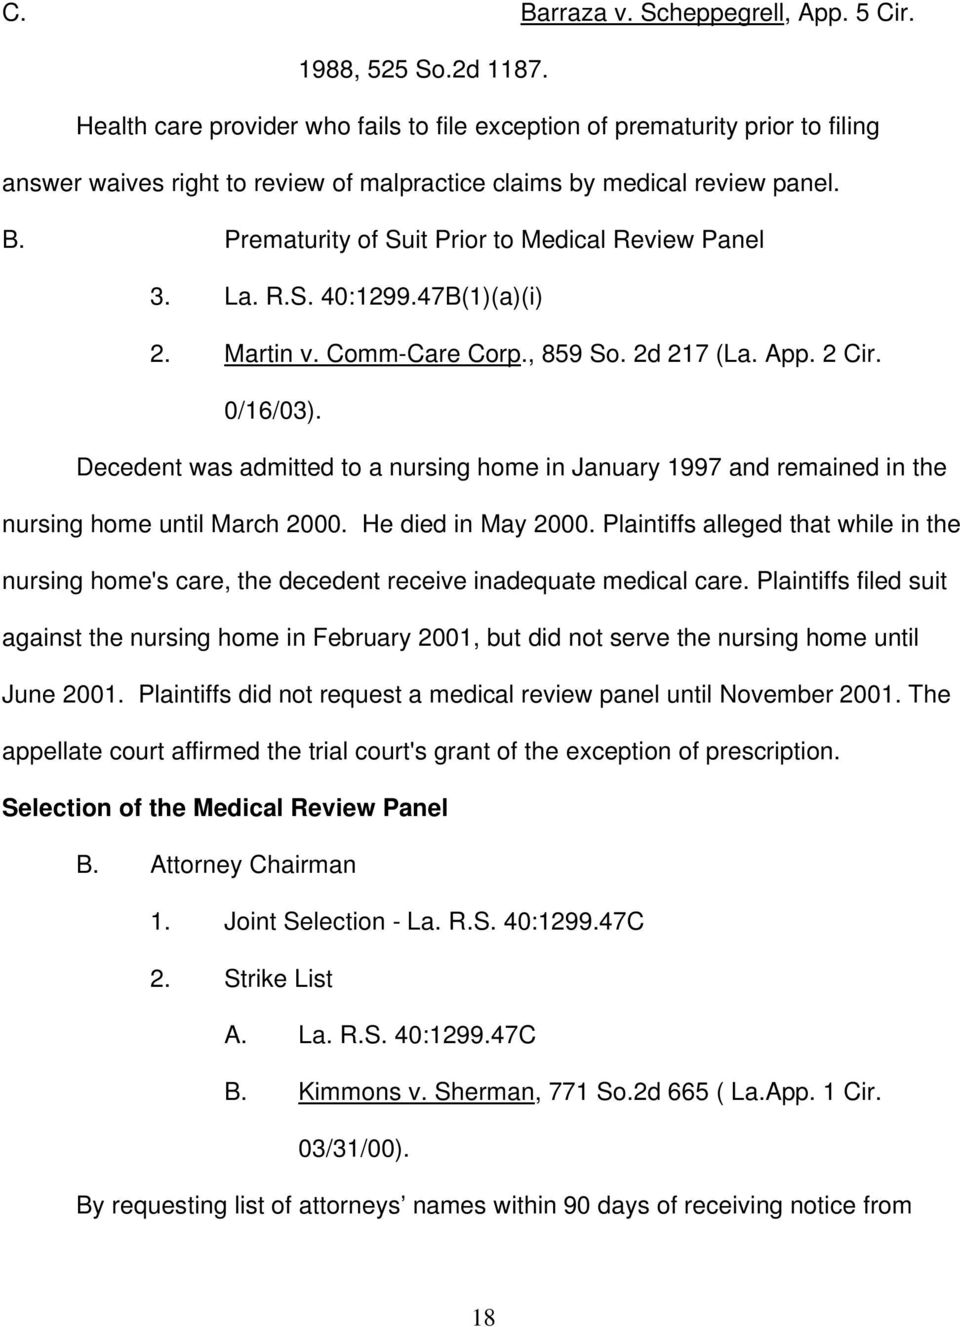 Prematurity of Suit Prior to Medical Review Panel 3. La. R.S. 40:1299.47B(1)(a)(i) 2. Martin v. Comm-Care Corp., 859 So. 2d 217 (La. App. 2 Cir. 0/16/03).